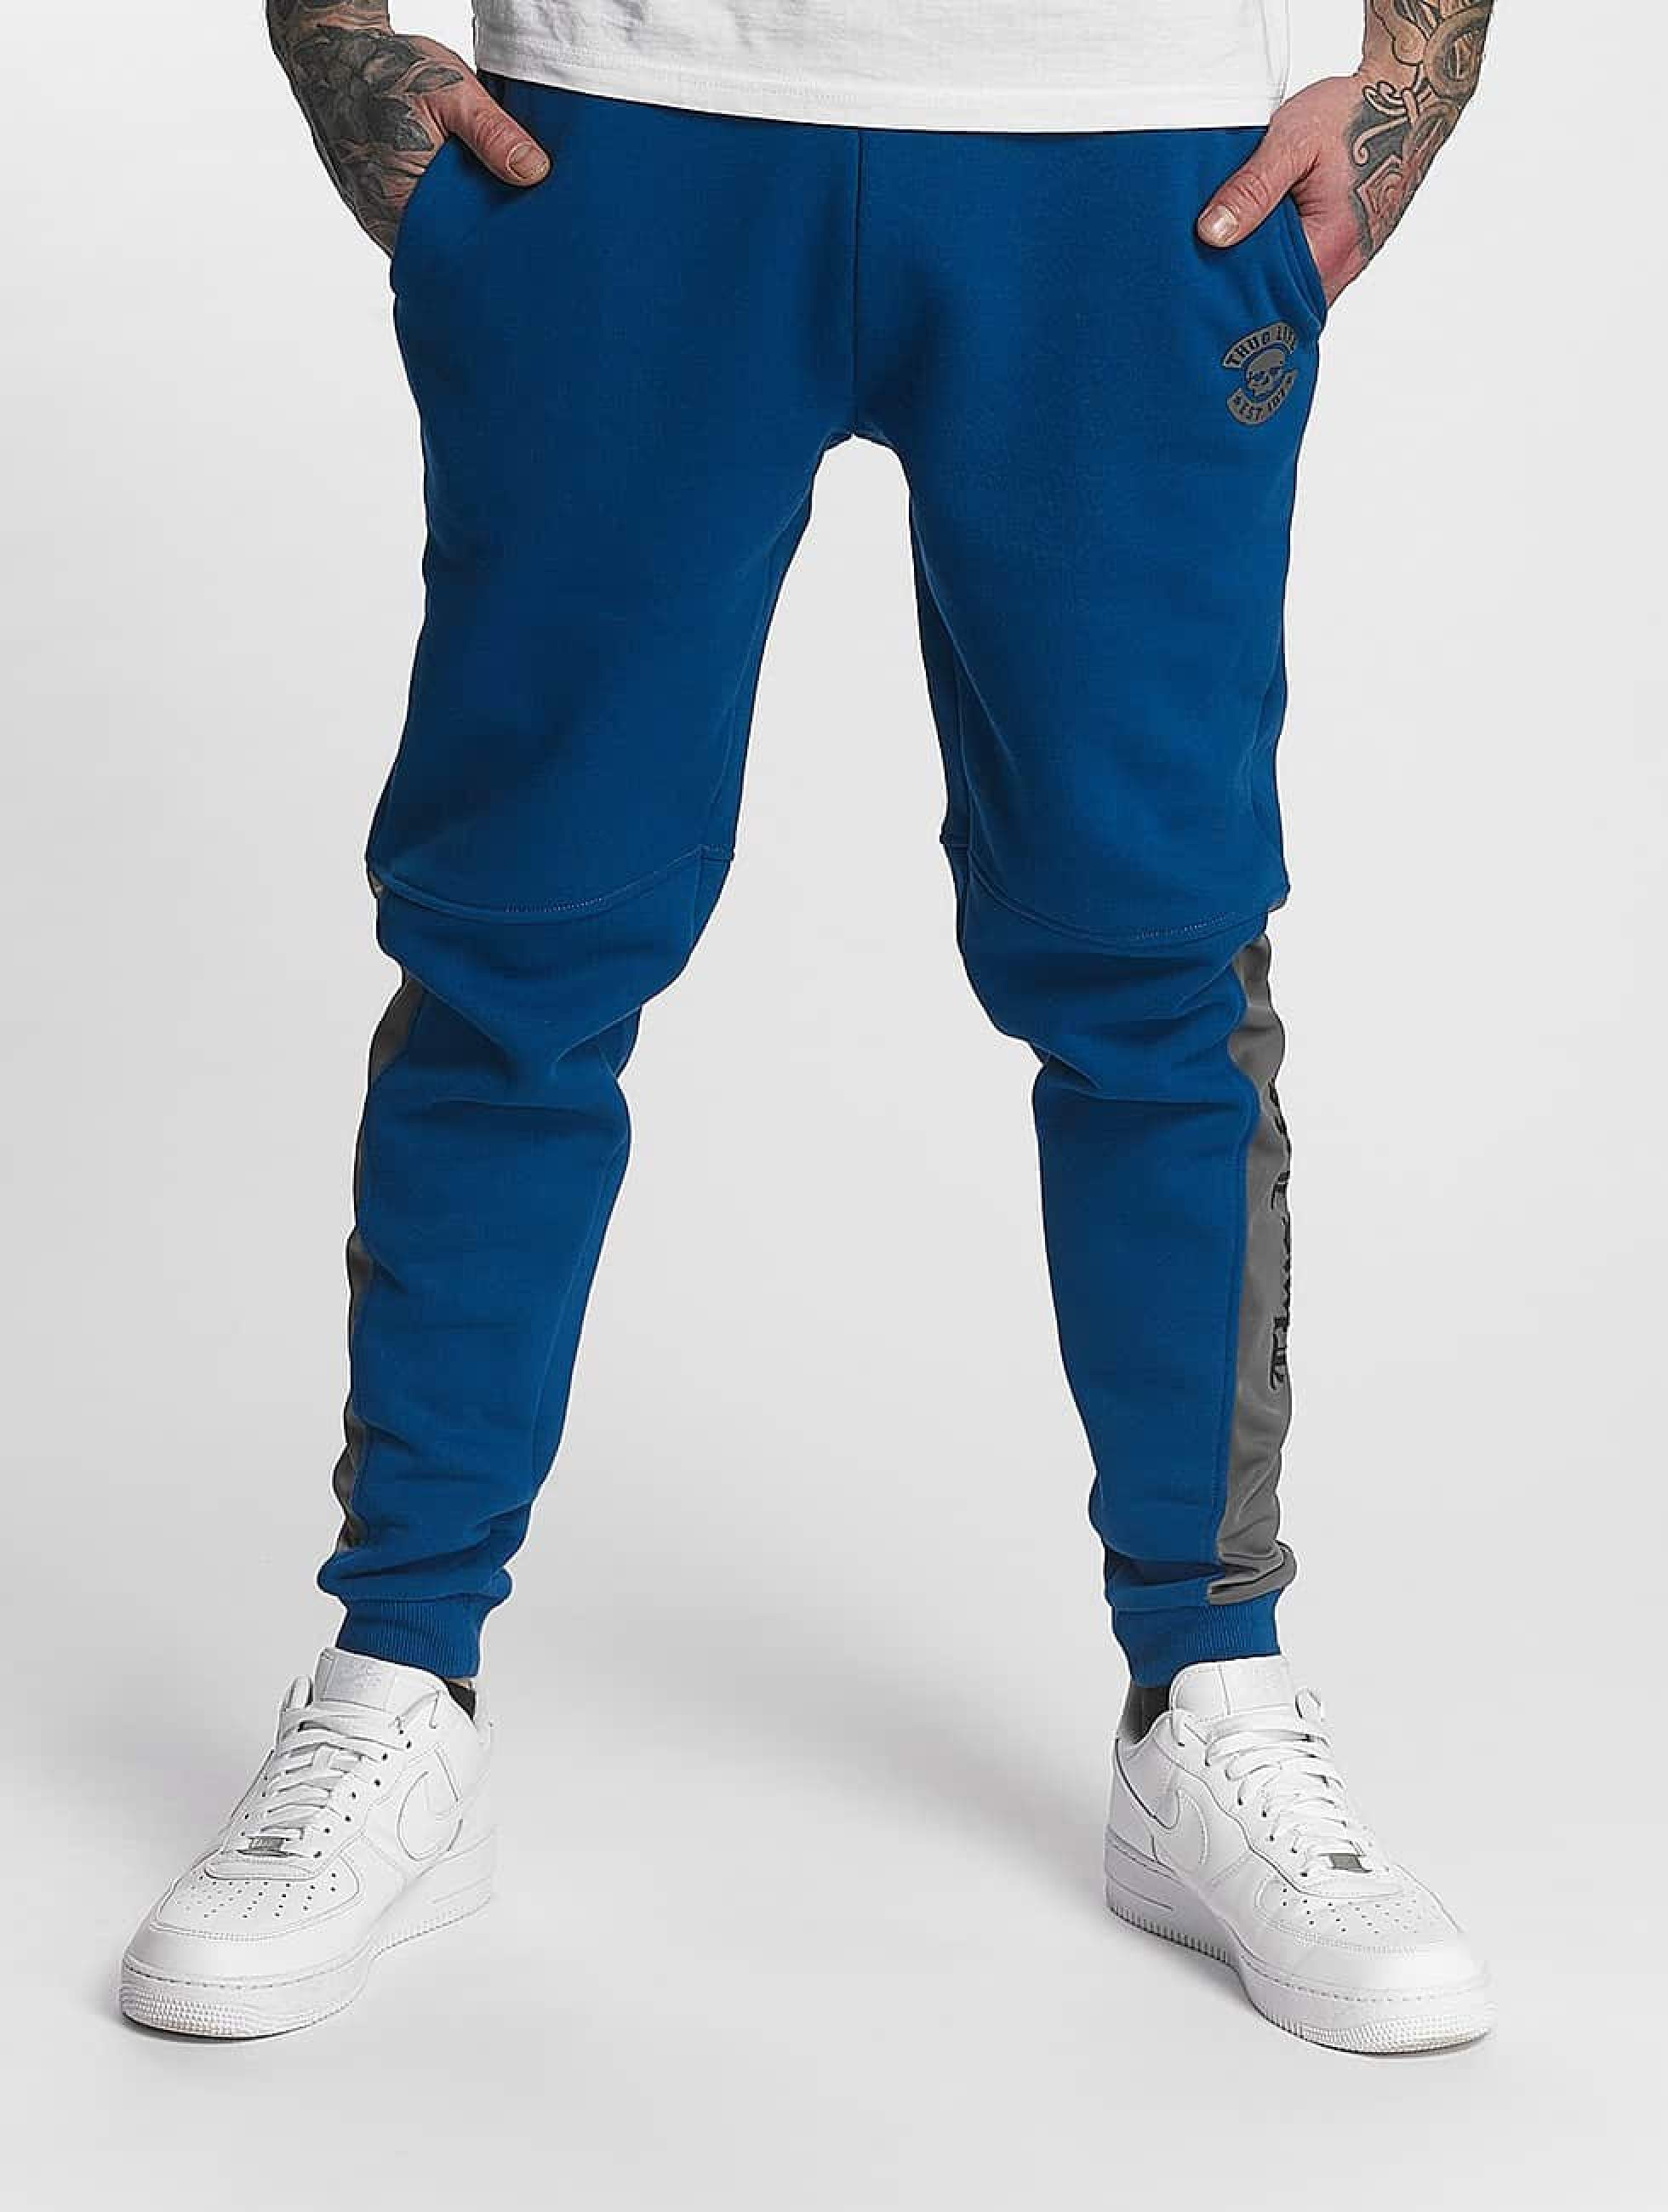 Thug Life / Sweat Pant Kurgan in blue L